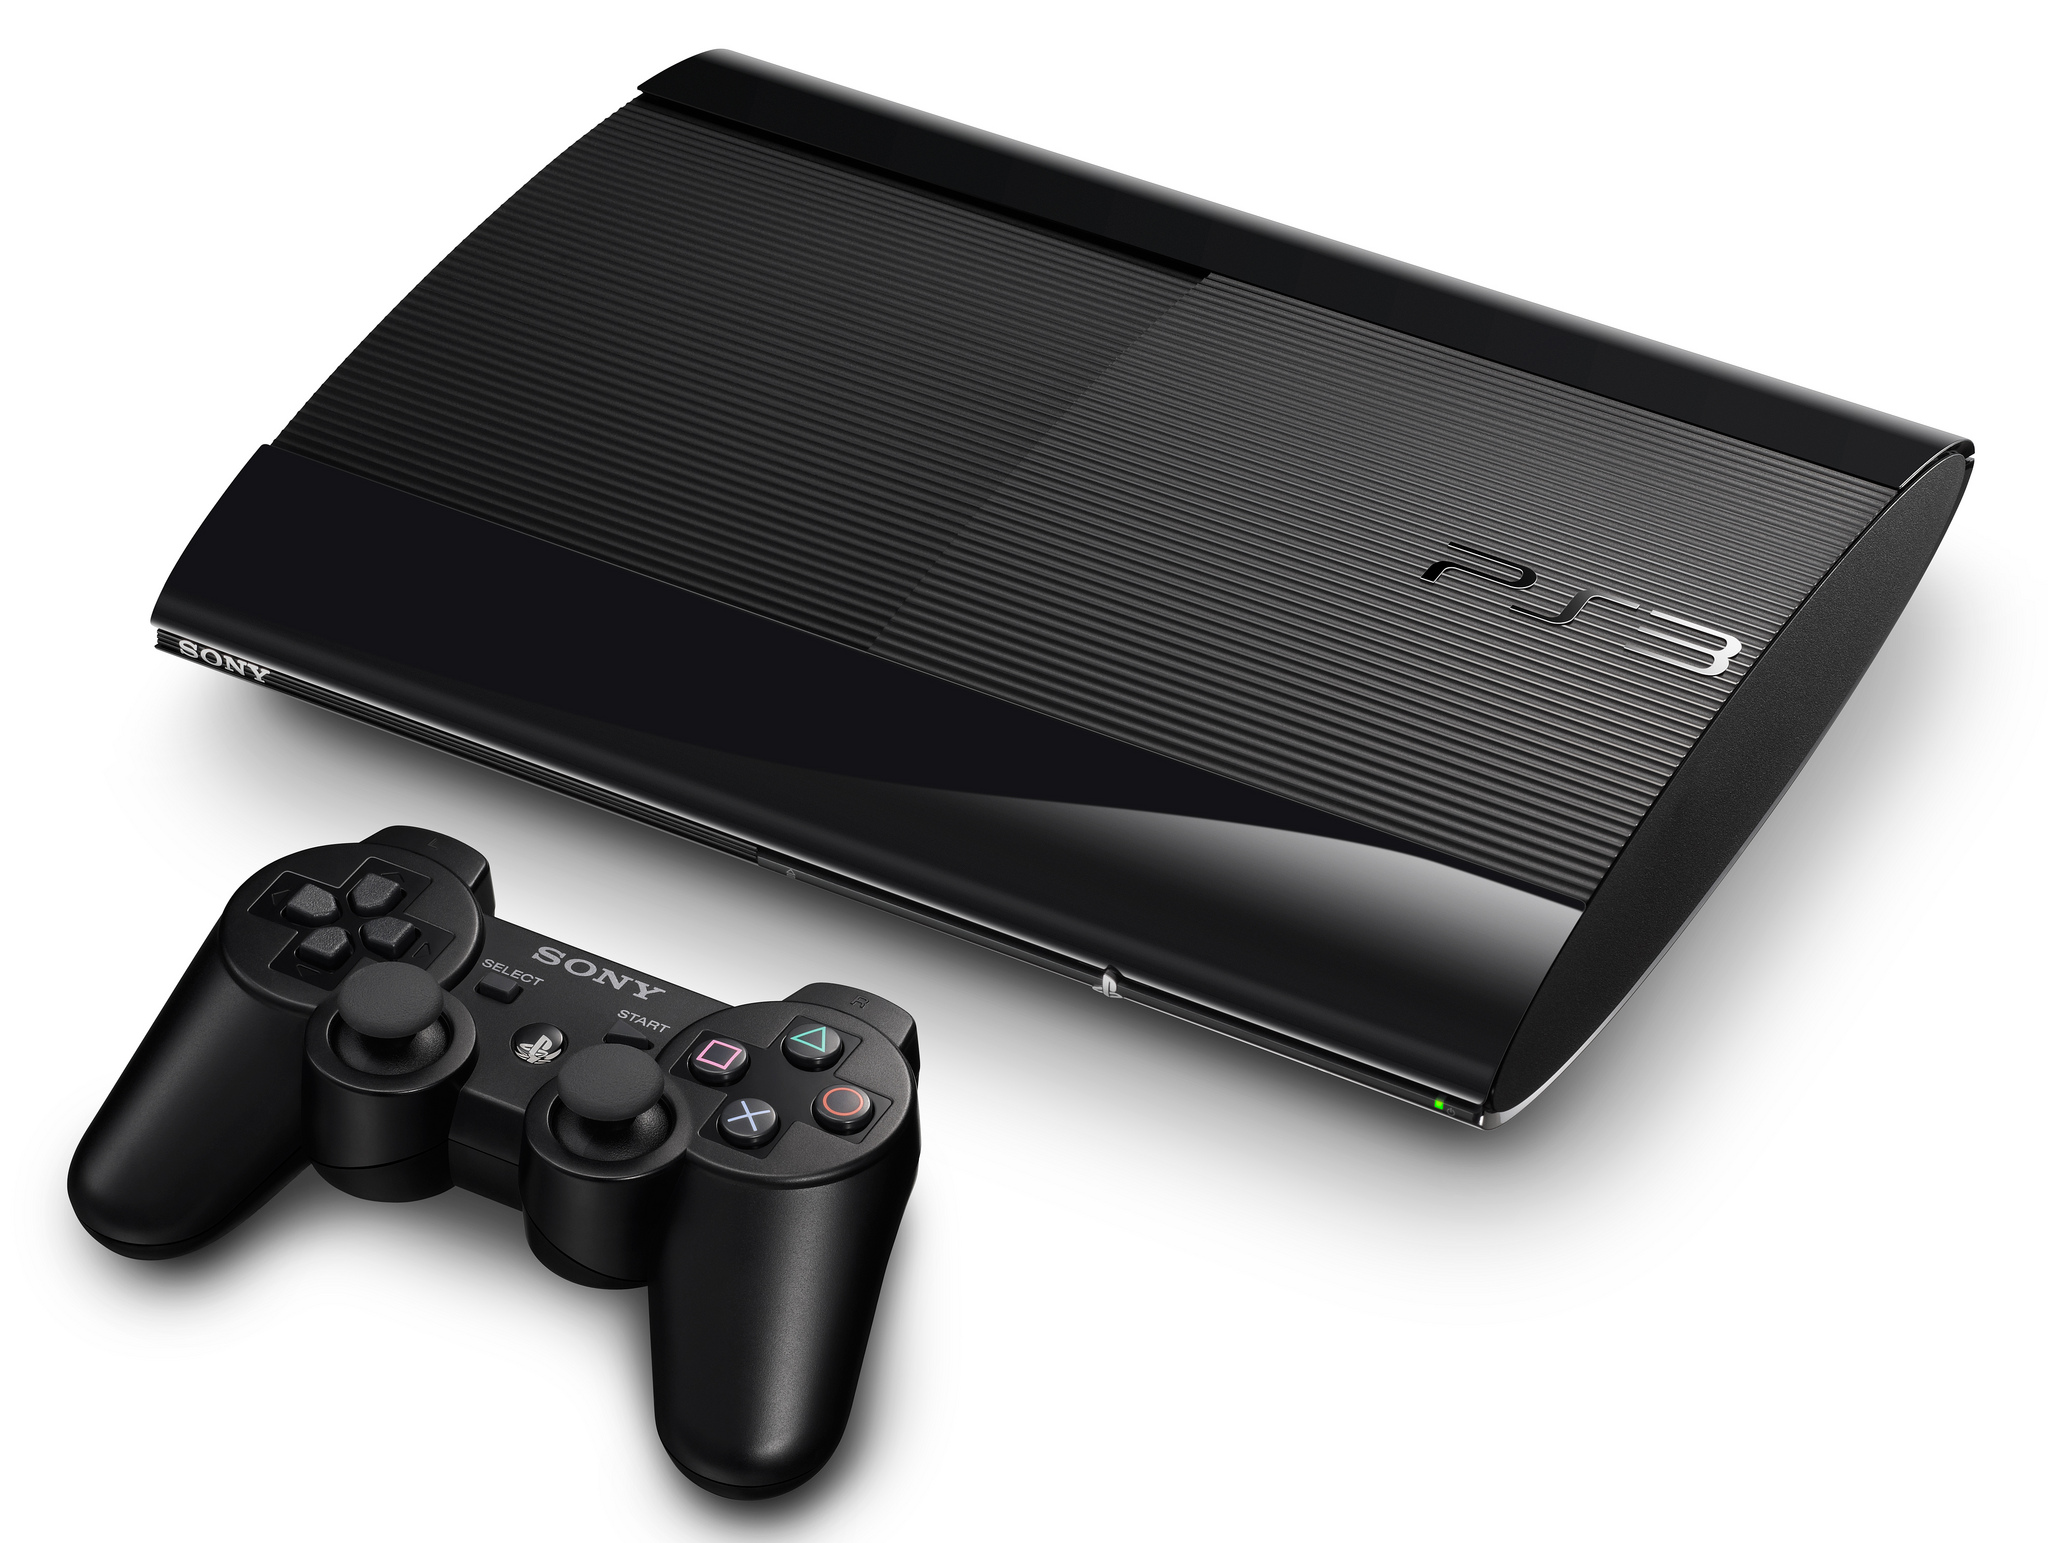 sony playstation 3 logo. ps3 firmware update 4.70 now available for download; reveals new playstation network logo sony playstation 3